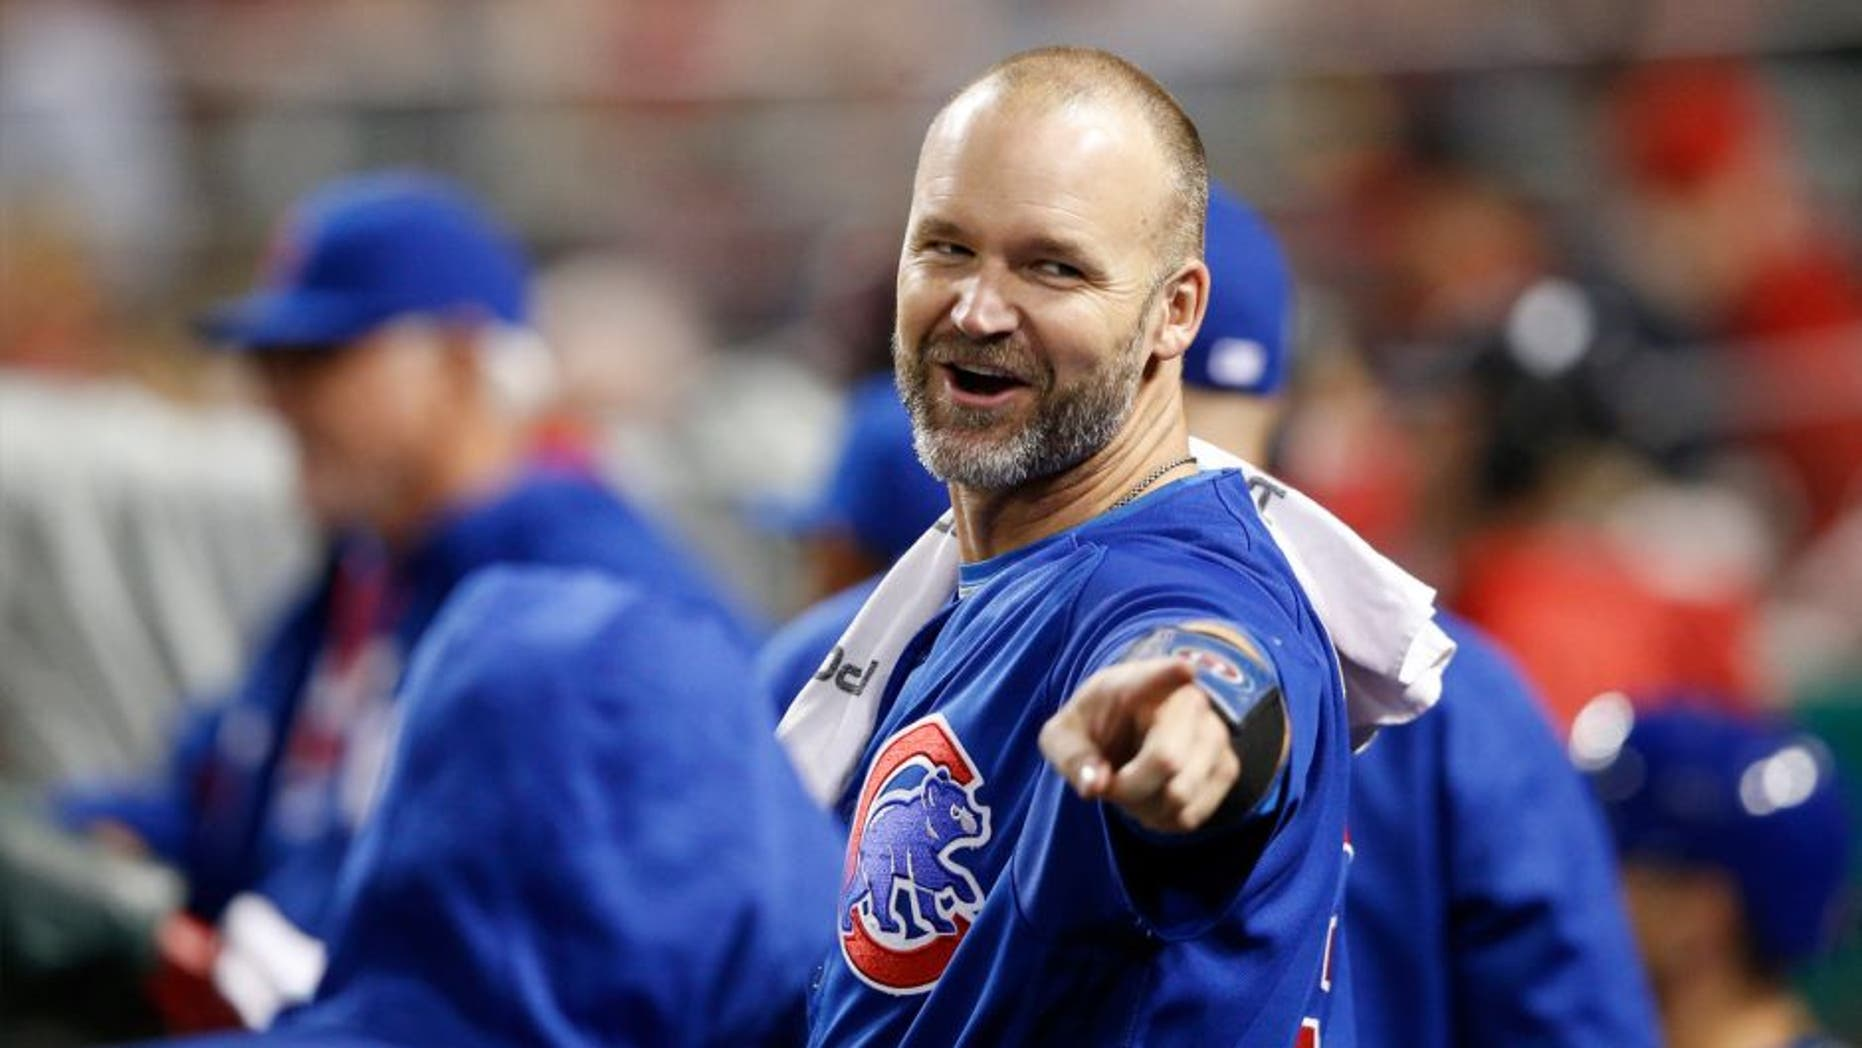 David Ross #3 of the Chicago Cubs looks on against the Cincinnati Reds during the game at Great American Ball Park on April 22, 2016 in Cincinnati, Ohio. The Cubs defeated the Reds 8-1. (Photo by Joe Robbins/Getty Images)